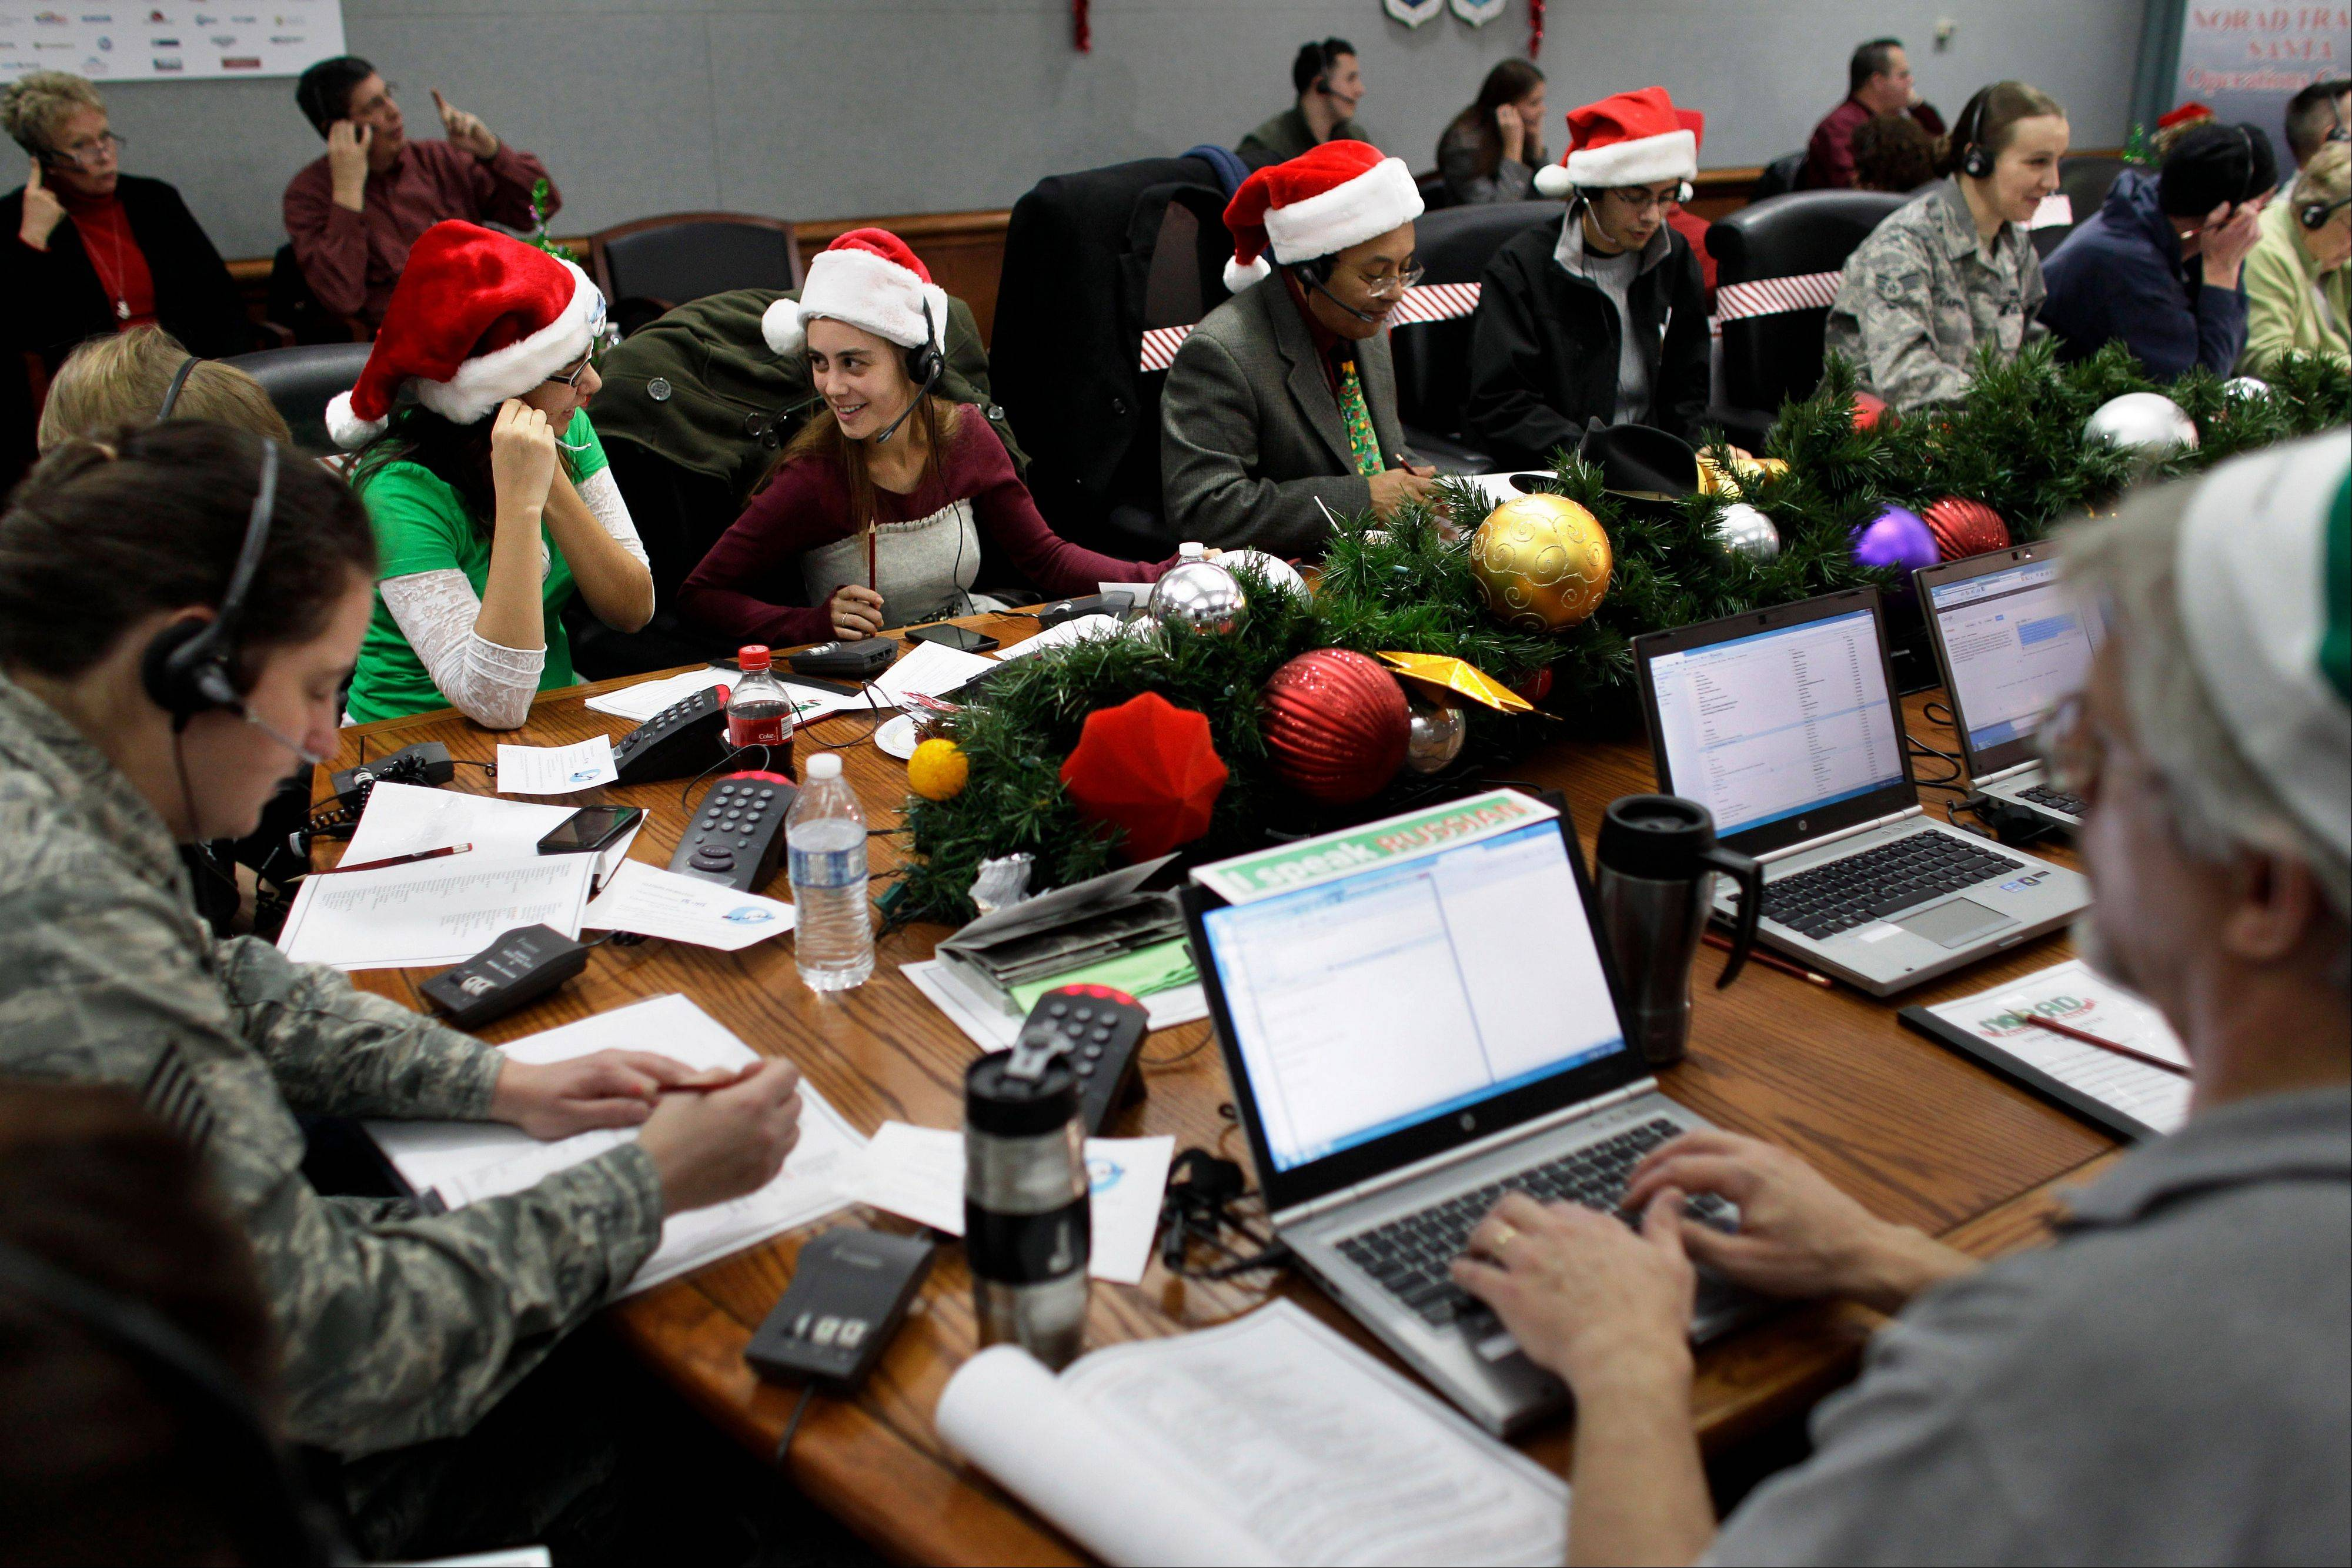 Lizzie Solano, center, and her sister Sarah take phone calls from children asking where Santa is and when he will deliver presents to their house, during the fifth annual NORAD Tracks Santa Operation, at the North American Aerospace Defense Command, or NORAD, at Peterson Air Force Base, in Colorado Springs, Colo., Monday Dec. 24, 2012. Over a thousand volunteers at NORAD handle more than 100,000 thousand phone calls from children around the world every Christmas Eve, when NORAD continually projects Santa Claus's supposed progress delivering presents.